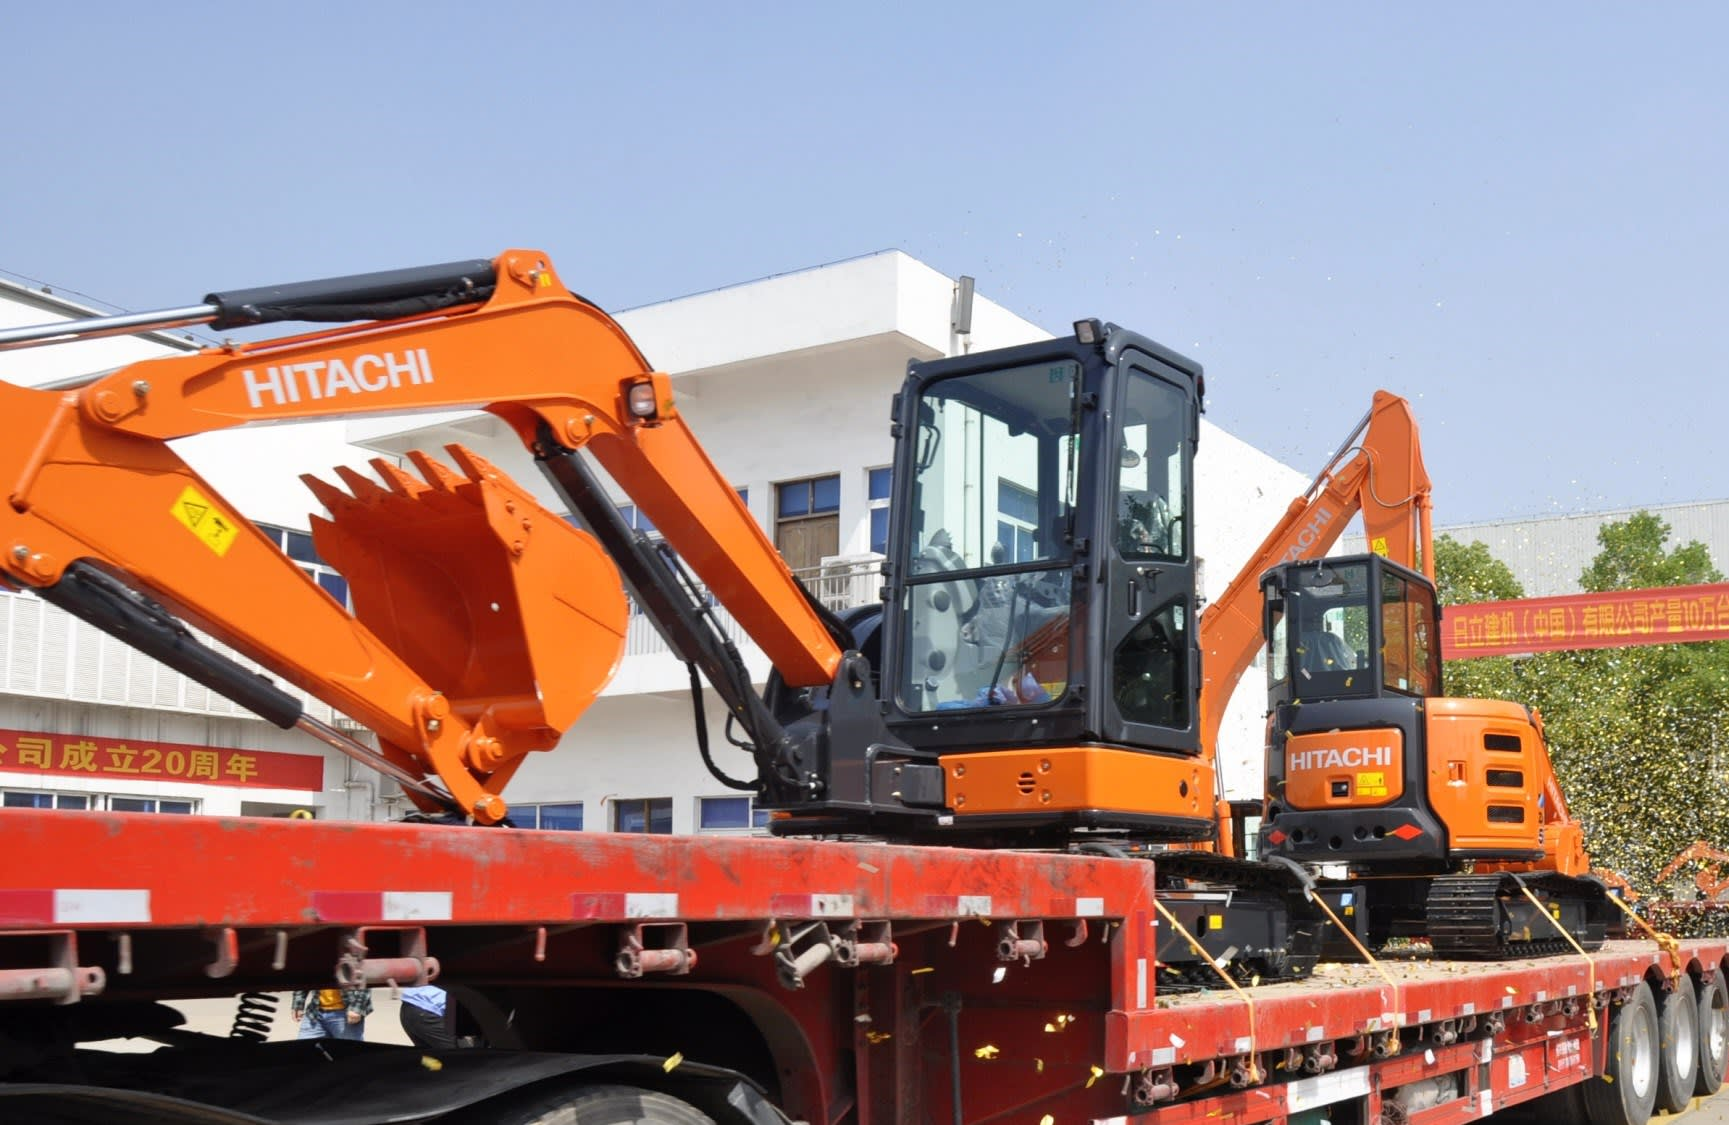 Japan Construction Machinery Suppliers Finding Their